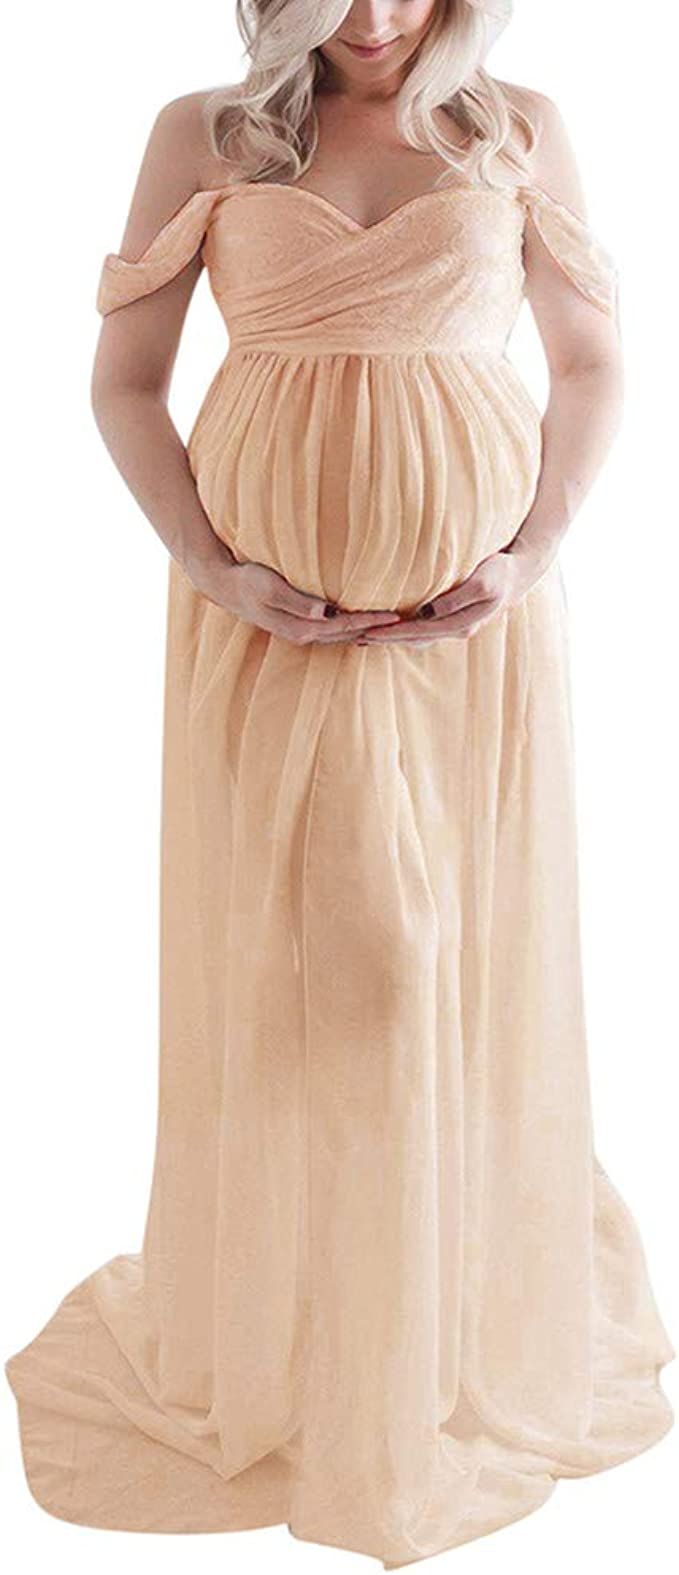 Beyonds Maternity Dresses Off Shoulder Ruffled Photography Flowy